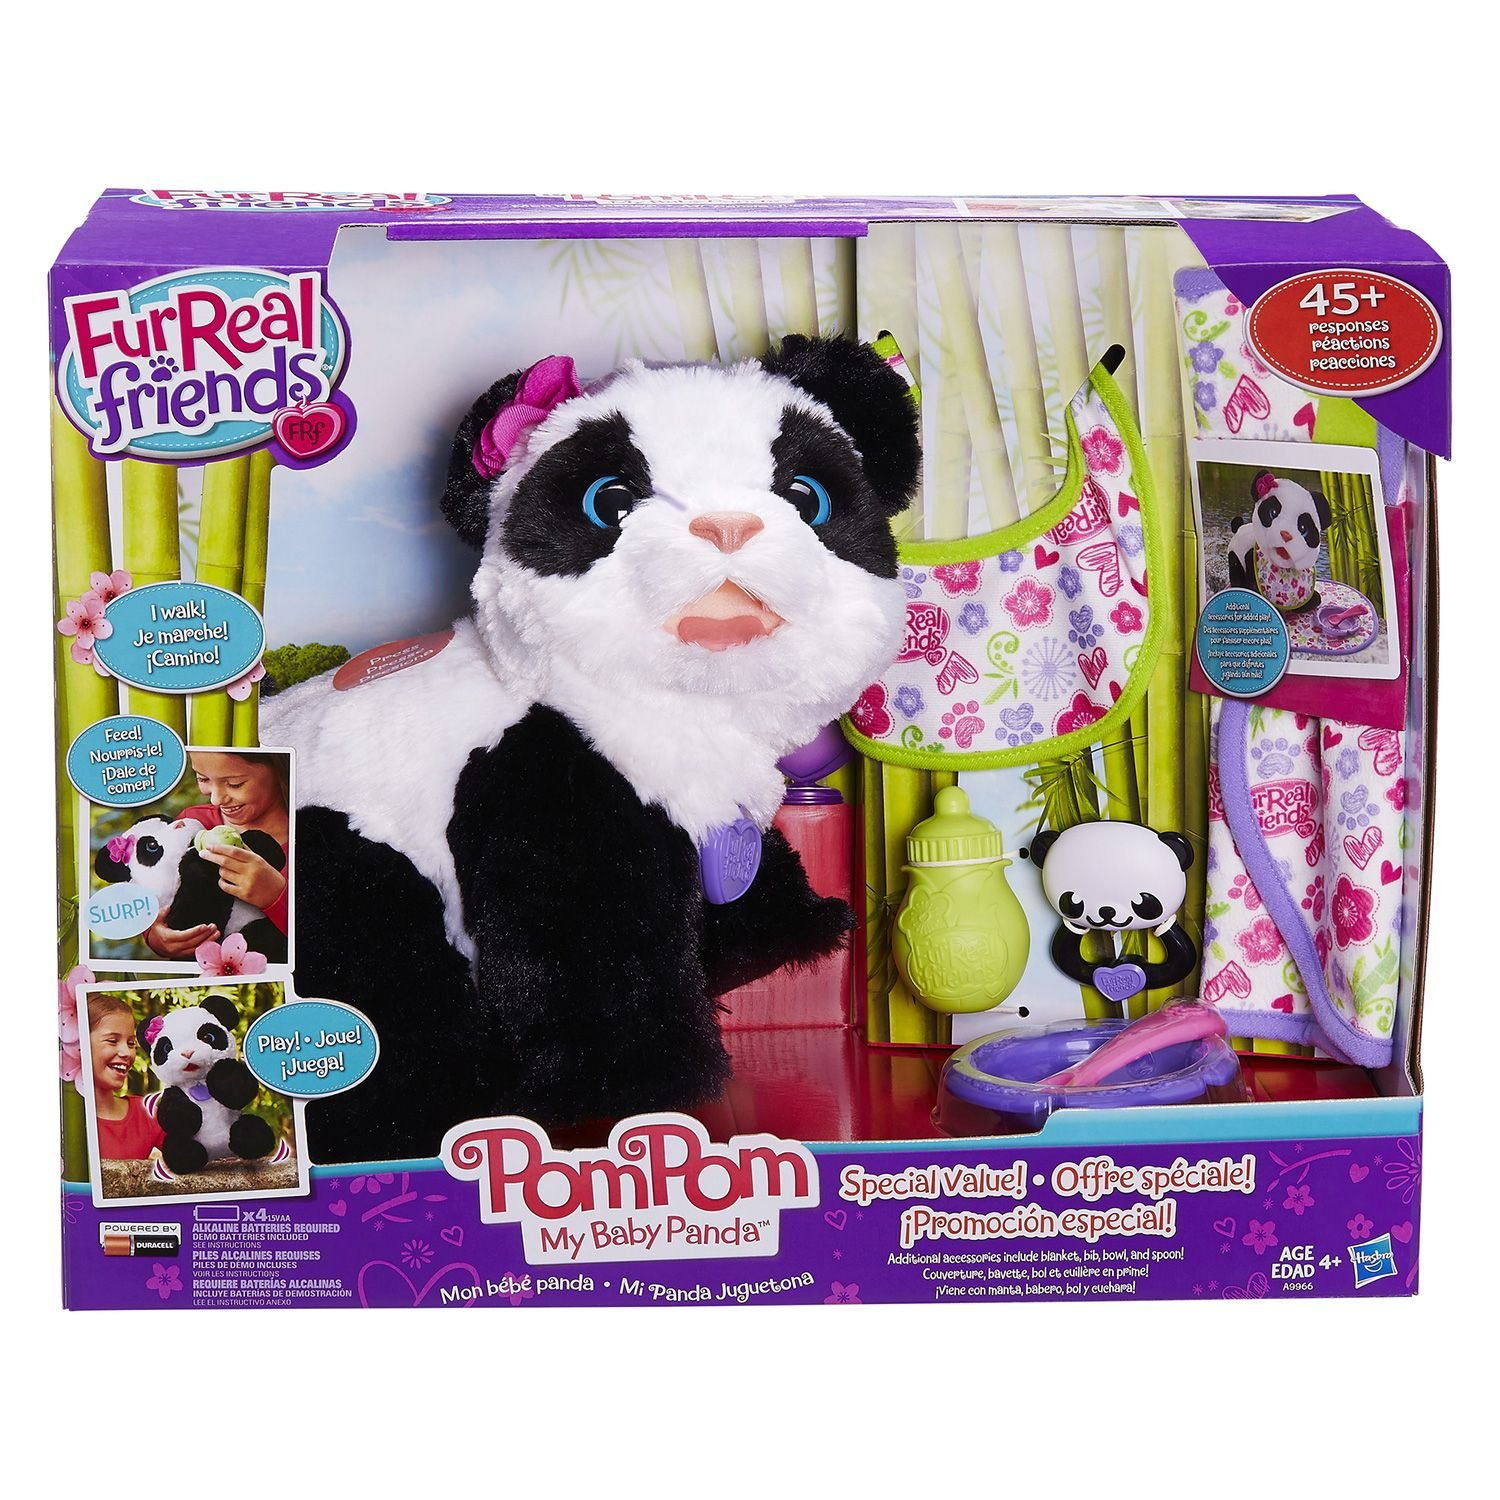 Fur Real Friends Pom Pom My Baby Panda Deluxe Set Panda Pet Plush by FurReal (Image #1)